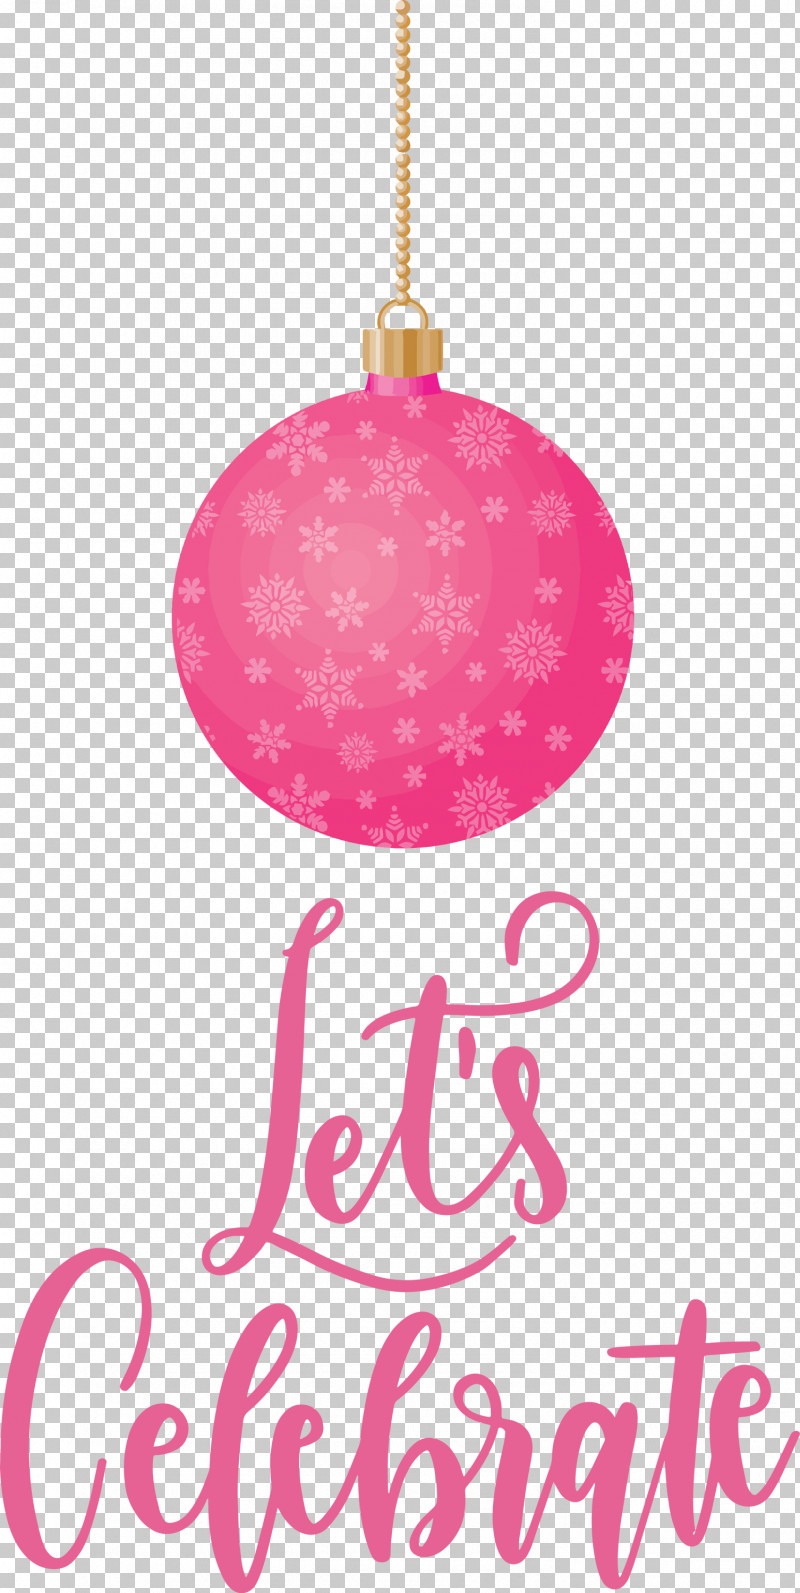 Lets Celebrate Celebrate PNG, Clipart, Celebrate, Christmas Day, Christmas Ornament, Christmas Ornament M, Holiday Free PNG Download